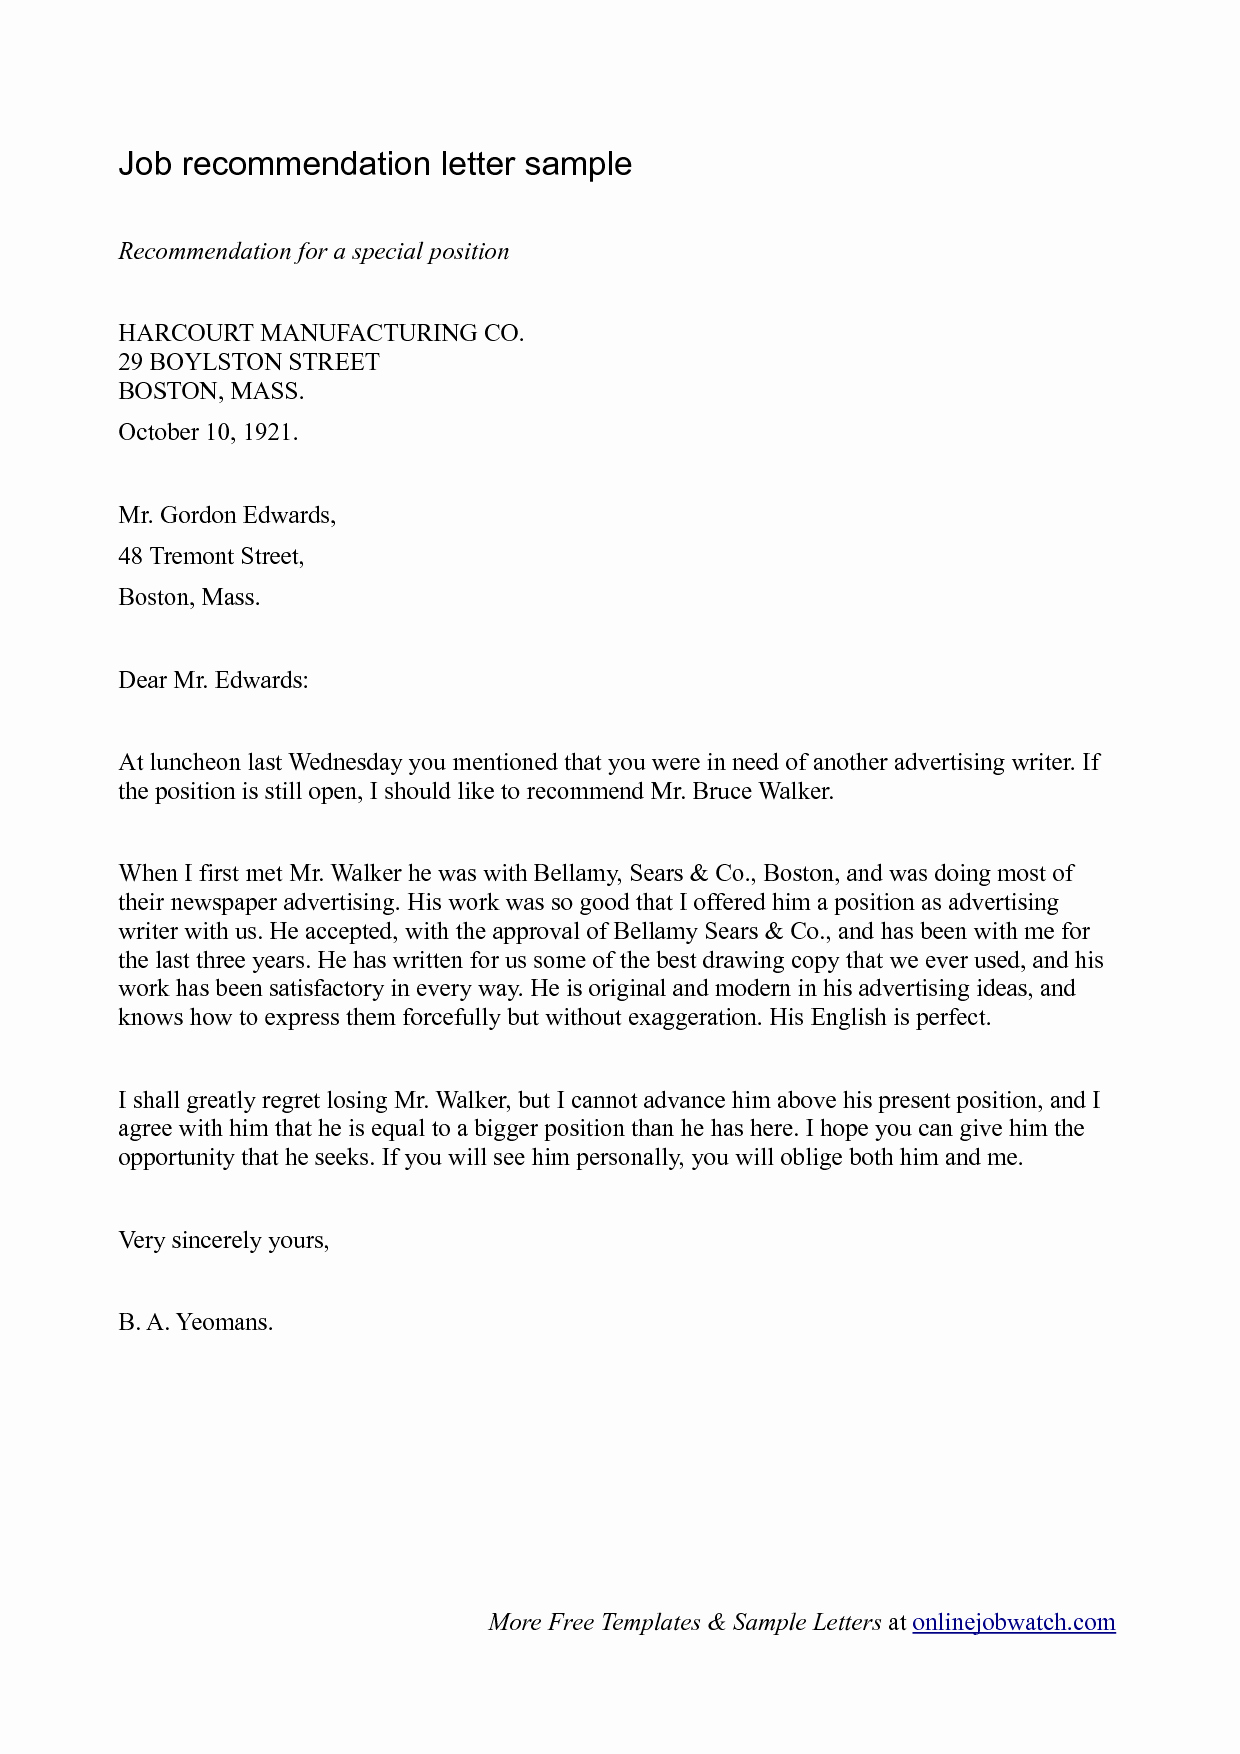 Format Of A Recommendation Letter Beautiful Simple Guide Professional Reference Letter with Samples